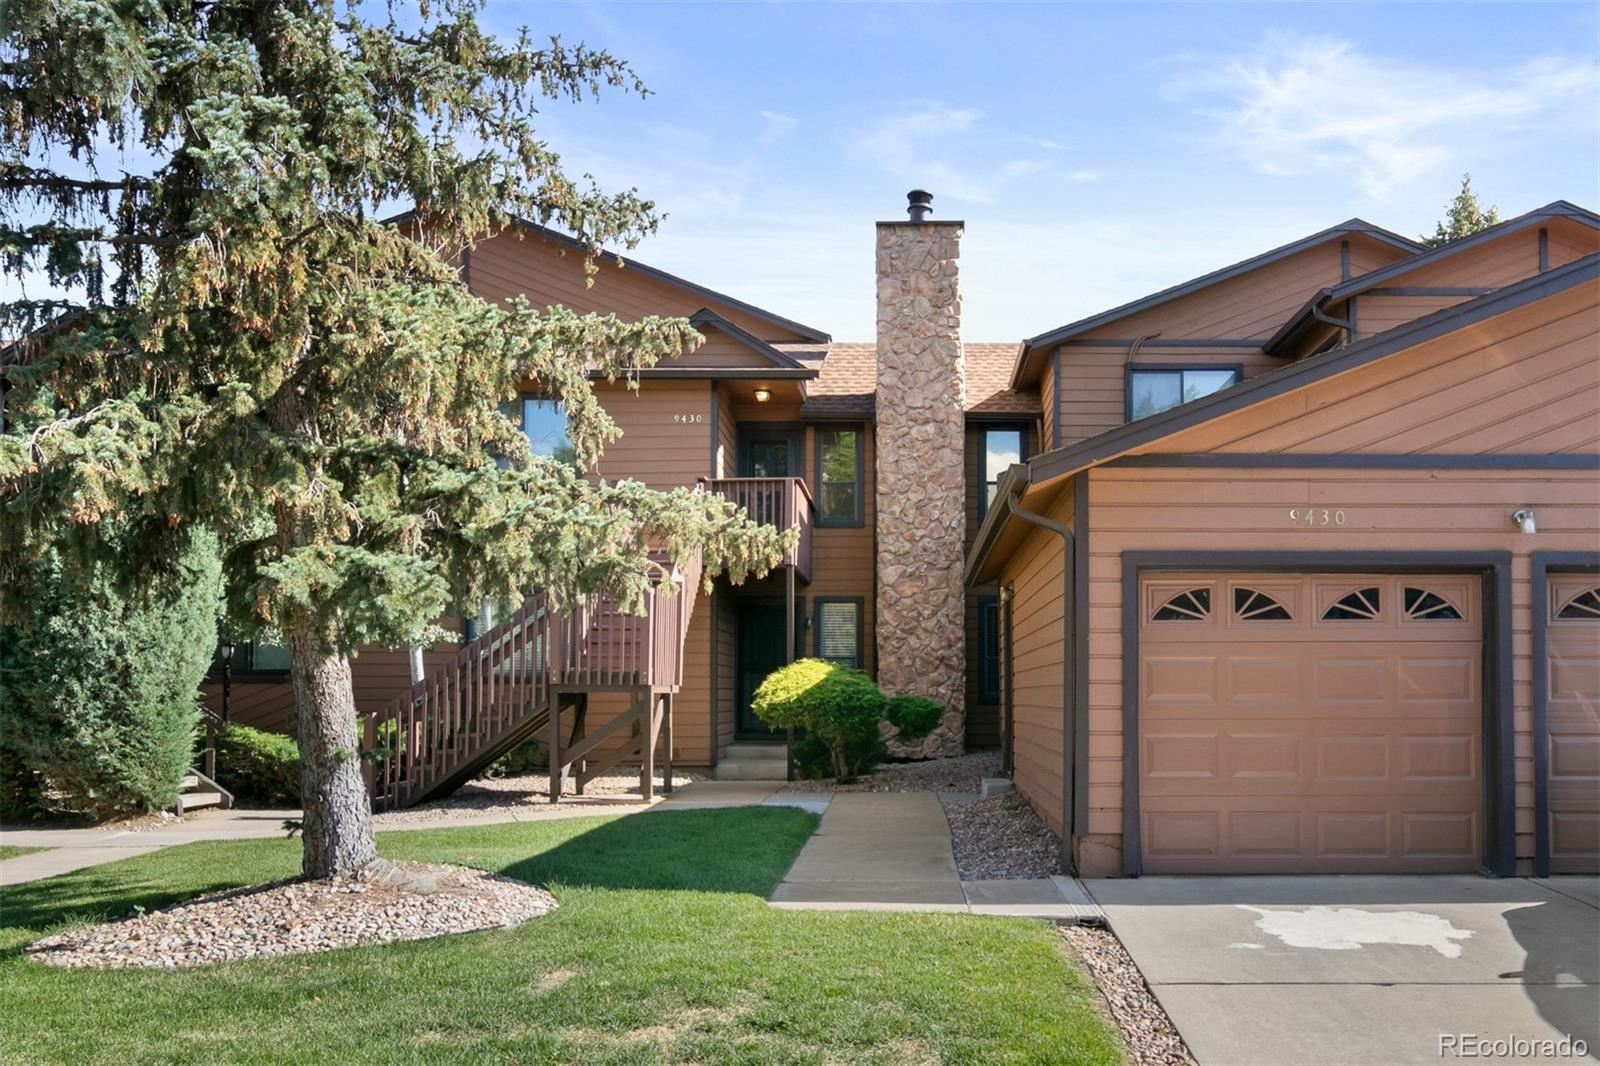 9430 W 89th Circle, Westminster, CO 80021 - #: 5017262